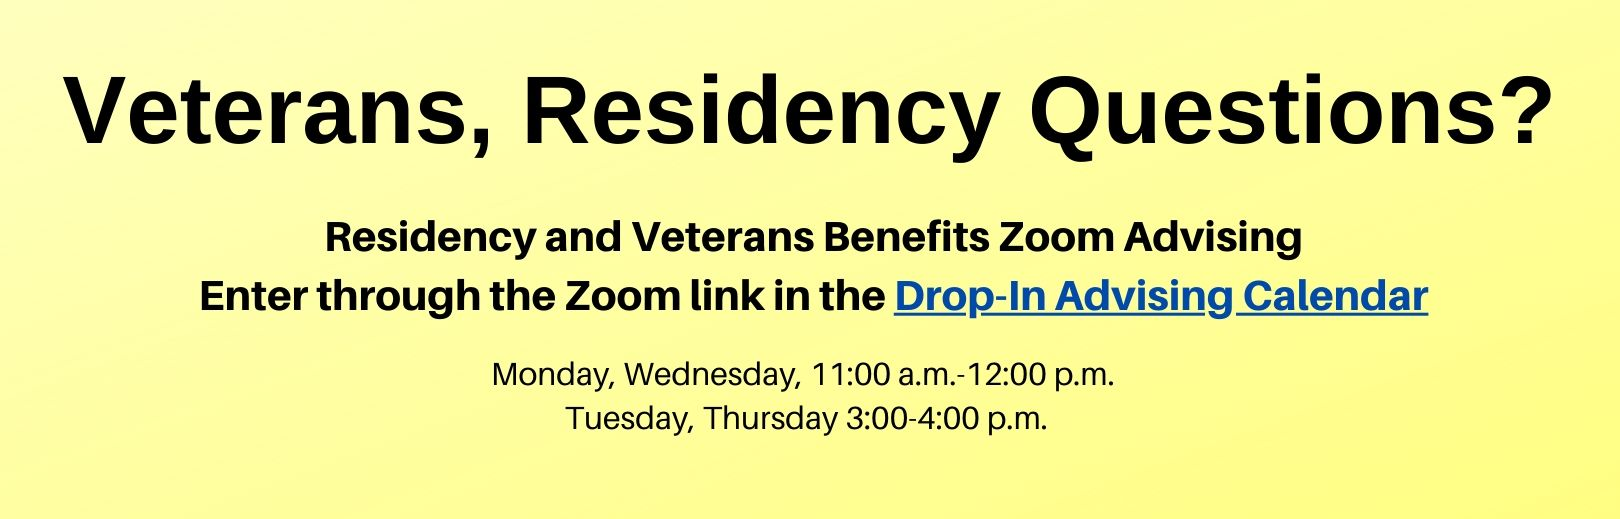 Drop-in advising for veterans and residency questions is available by Zoom meeting on Mondays and Wednesdays from 11:00 a.m. to 12:00 p.m., and on Tuesdays and Thursdays from 3:00 to 4:00 p.m. Enter through the Zoom link in the Drop-In Advising Calendar at: https://registrar.ucsc.edu/enrollment/veterans/index.html#drop.